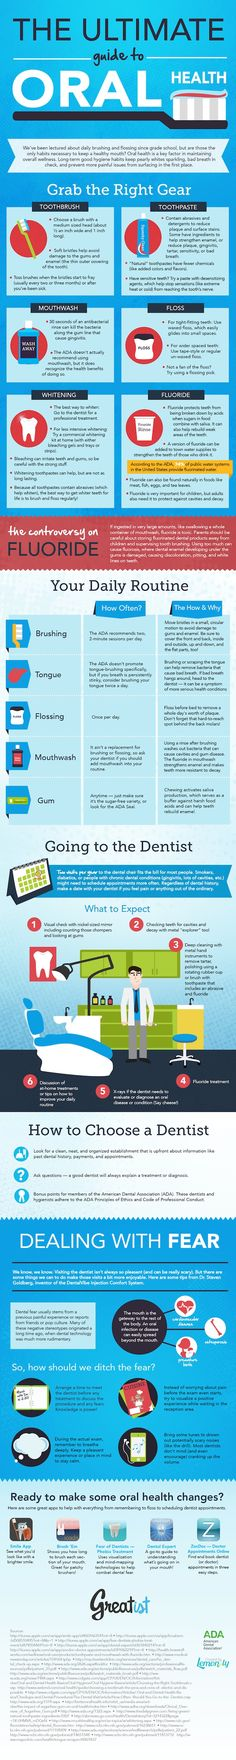 infographic: the ultimate guide to oral health (greatist.com)